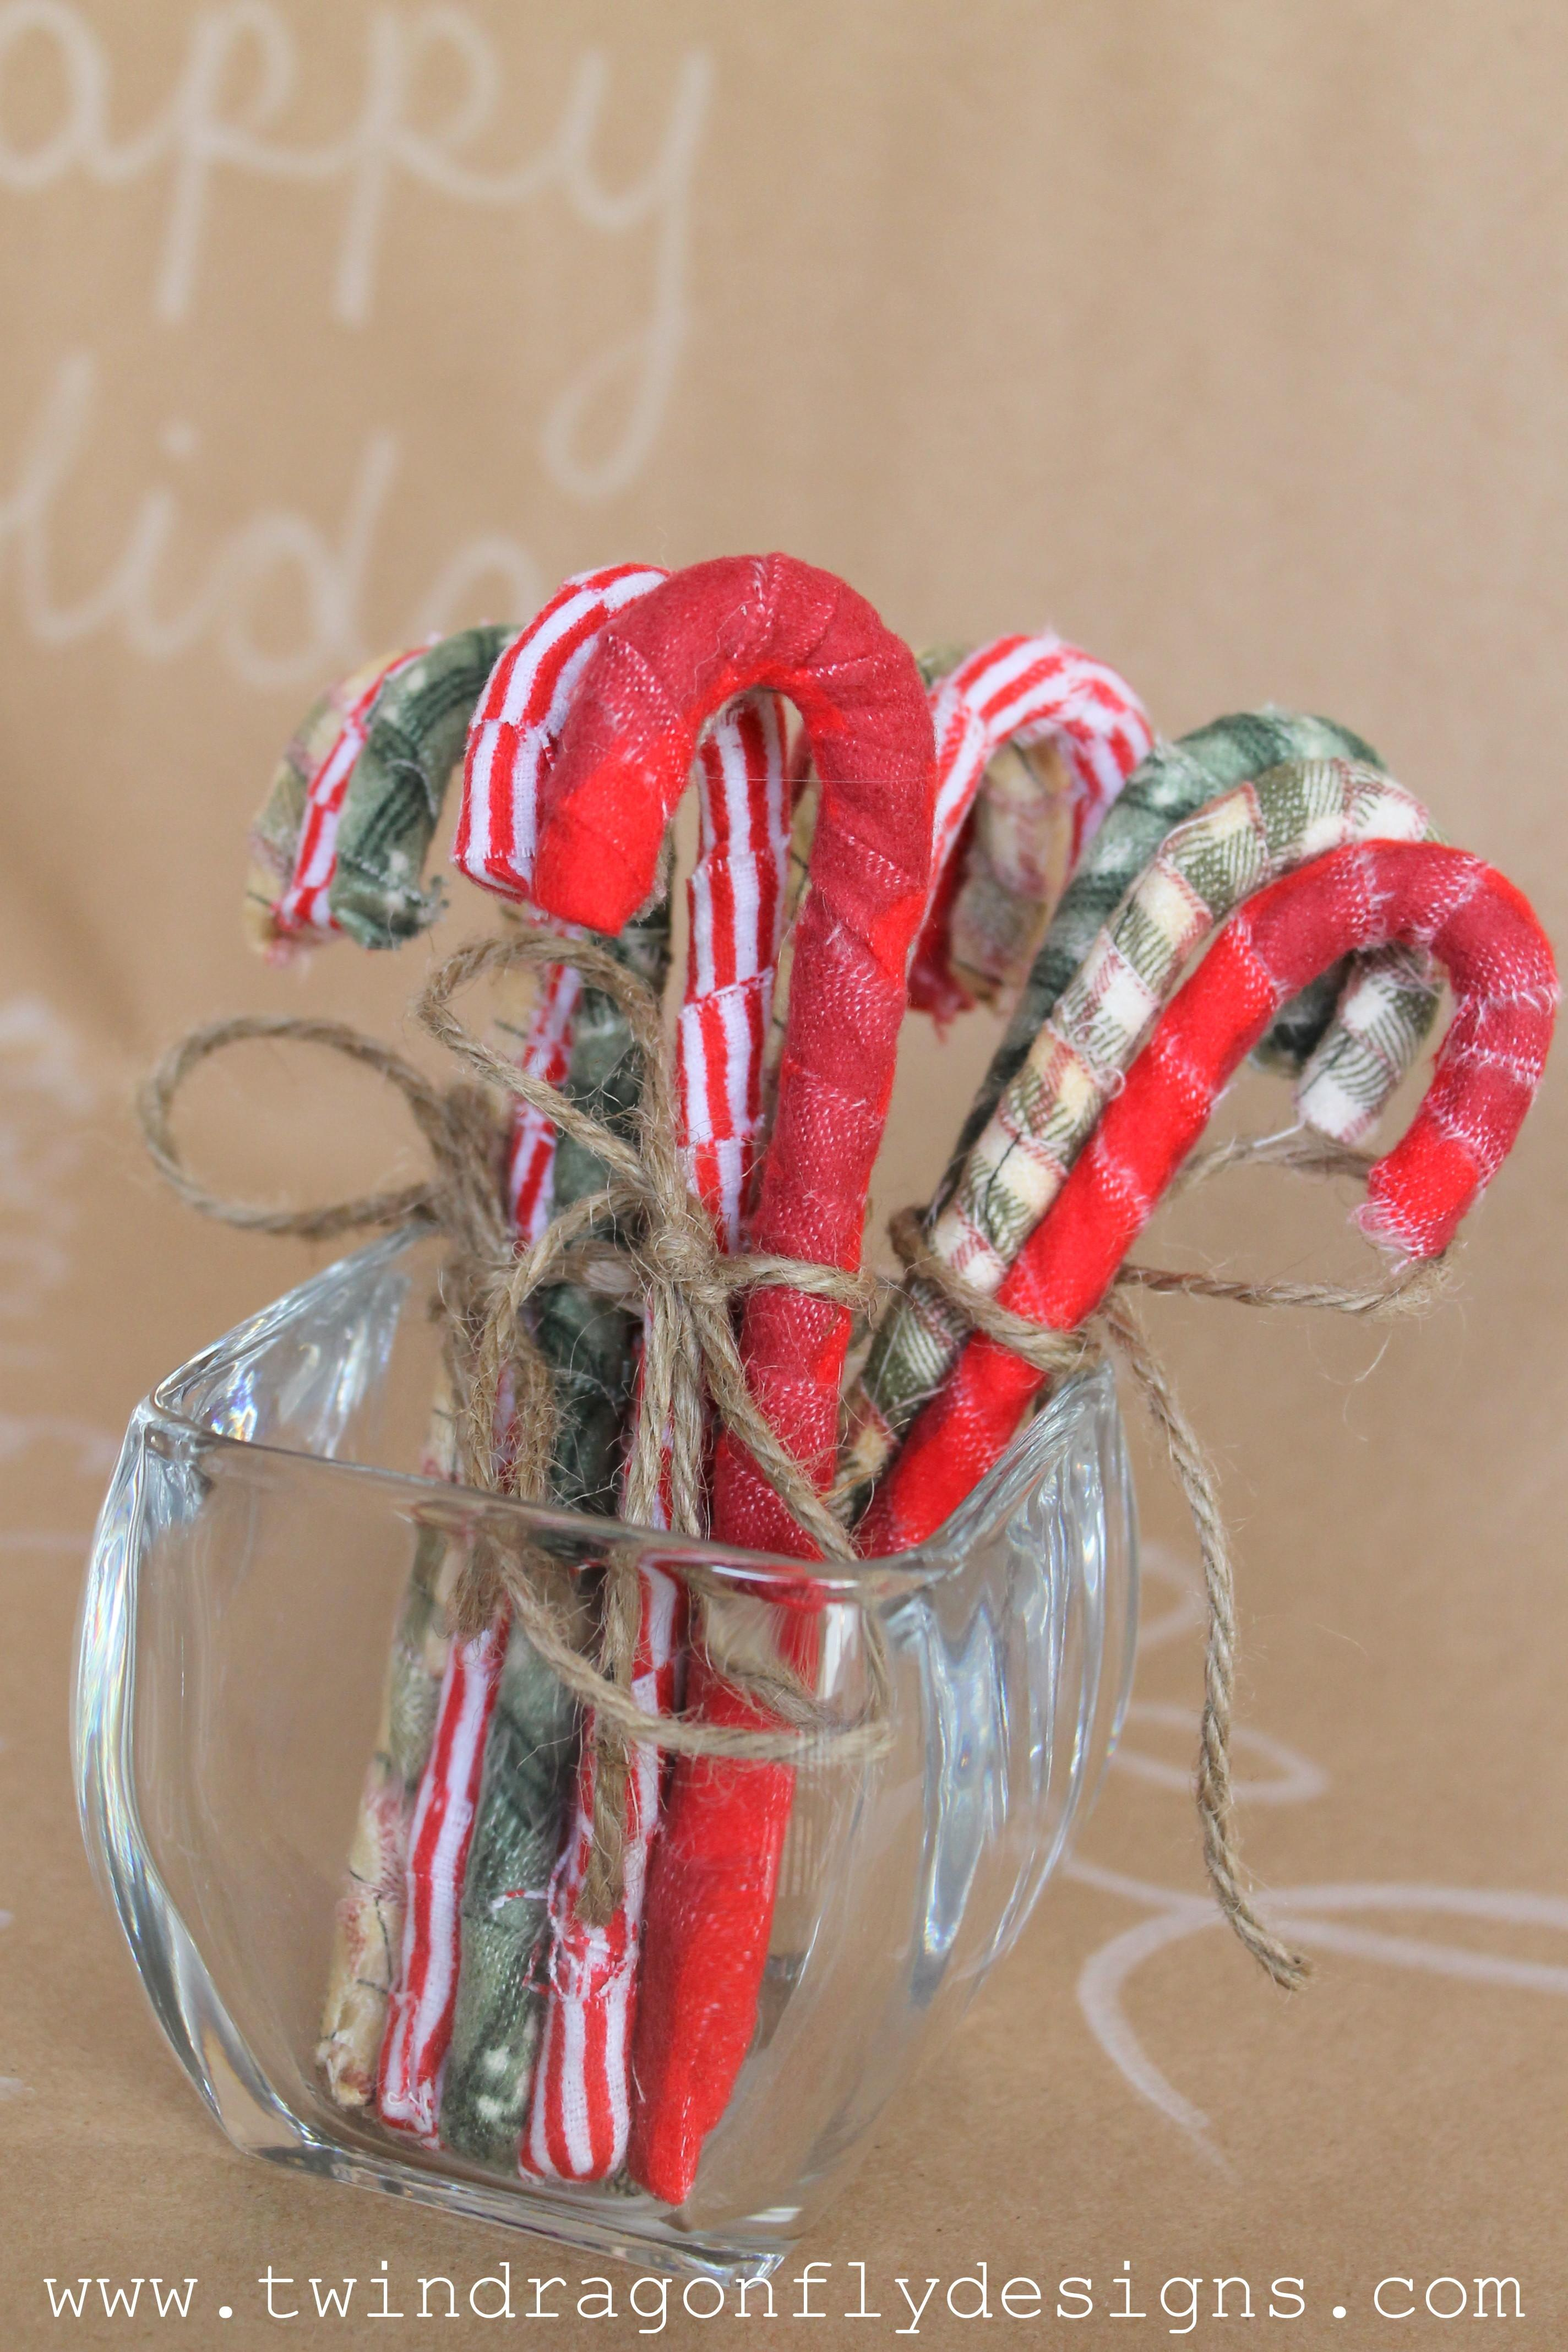 Diy Rustic Candy Canes Dragonfly Designs